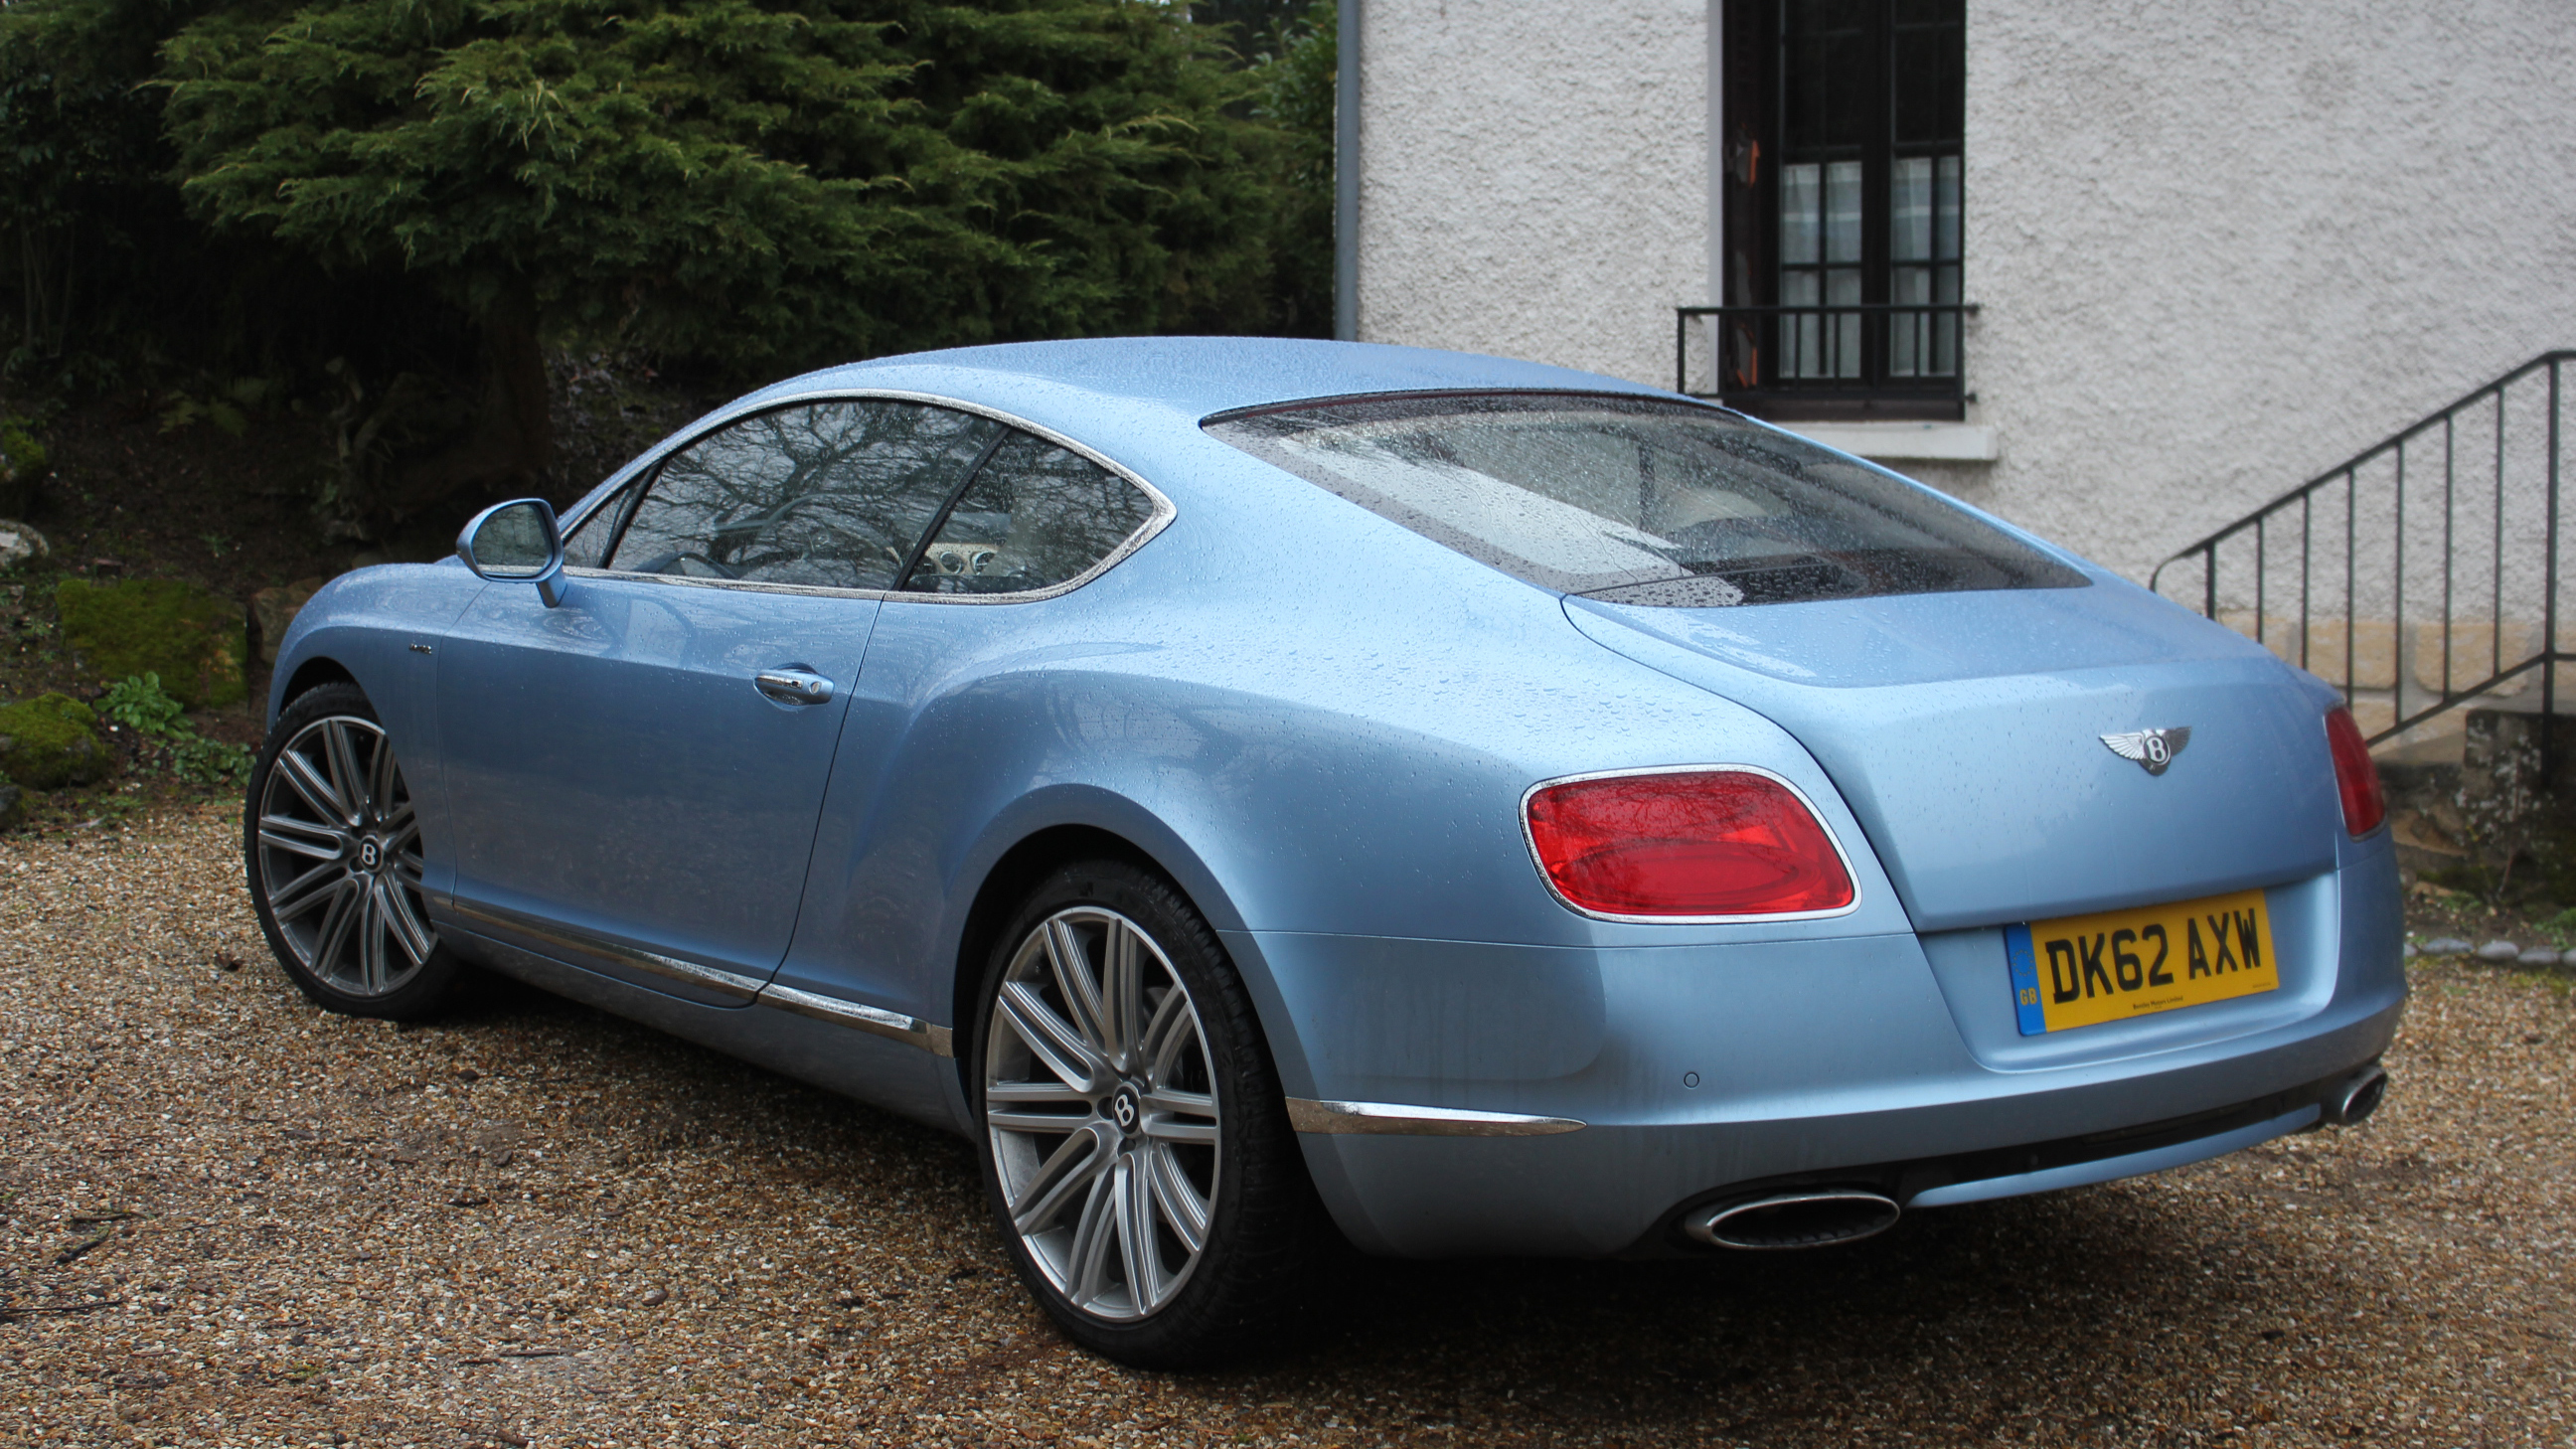 http://images.caradisiac.com/images/5/2/6/3/85263/S0-Essai-video-Bentley-Continental-GT-Speed-so-scandalous-288633.jpg